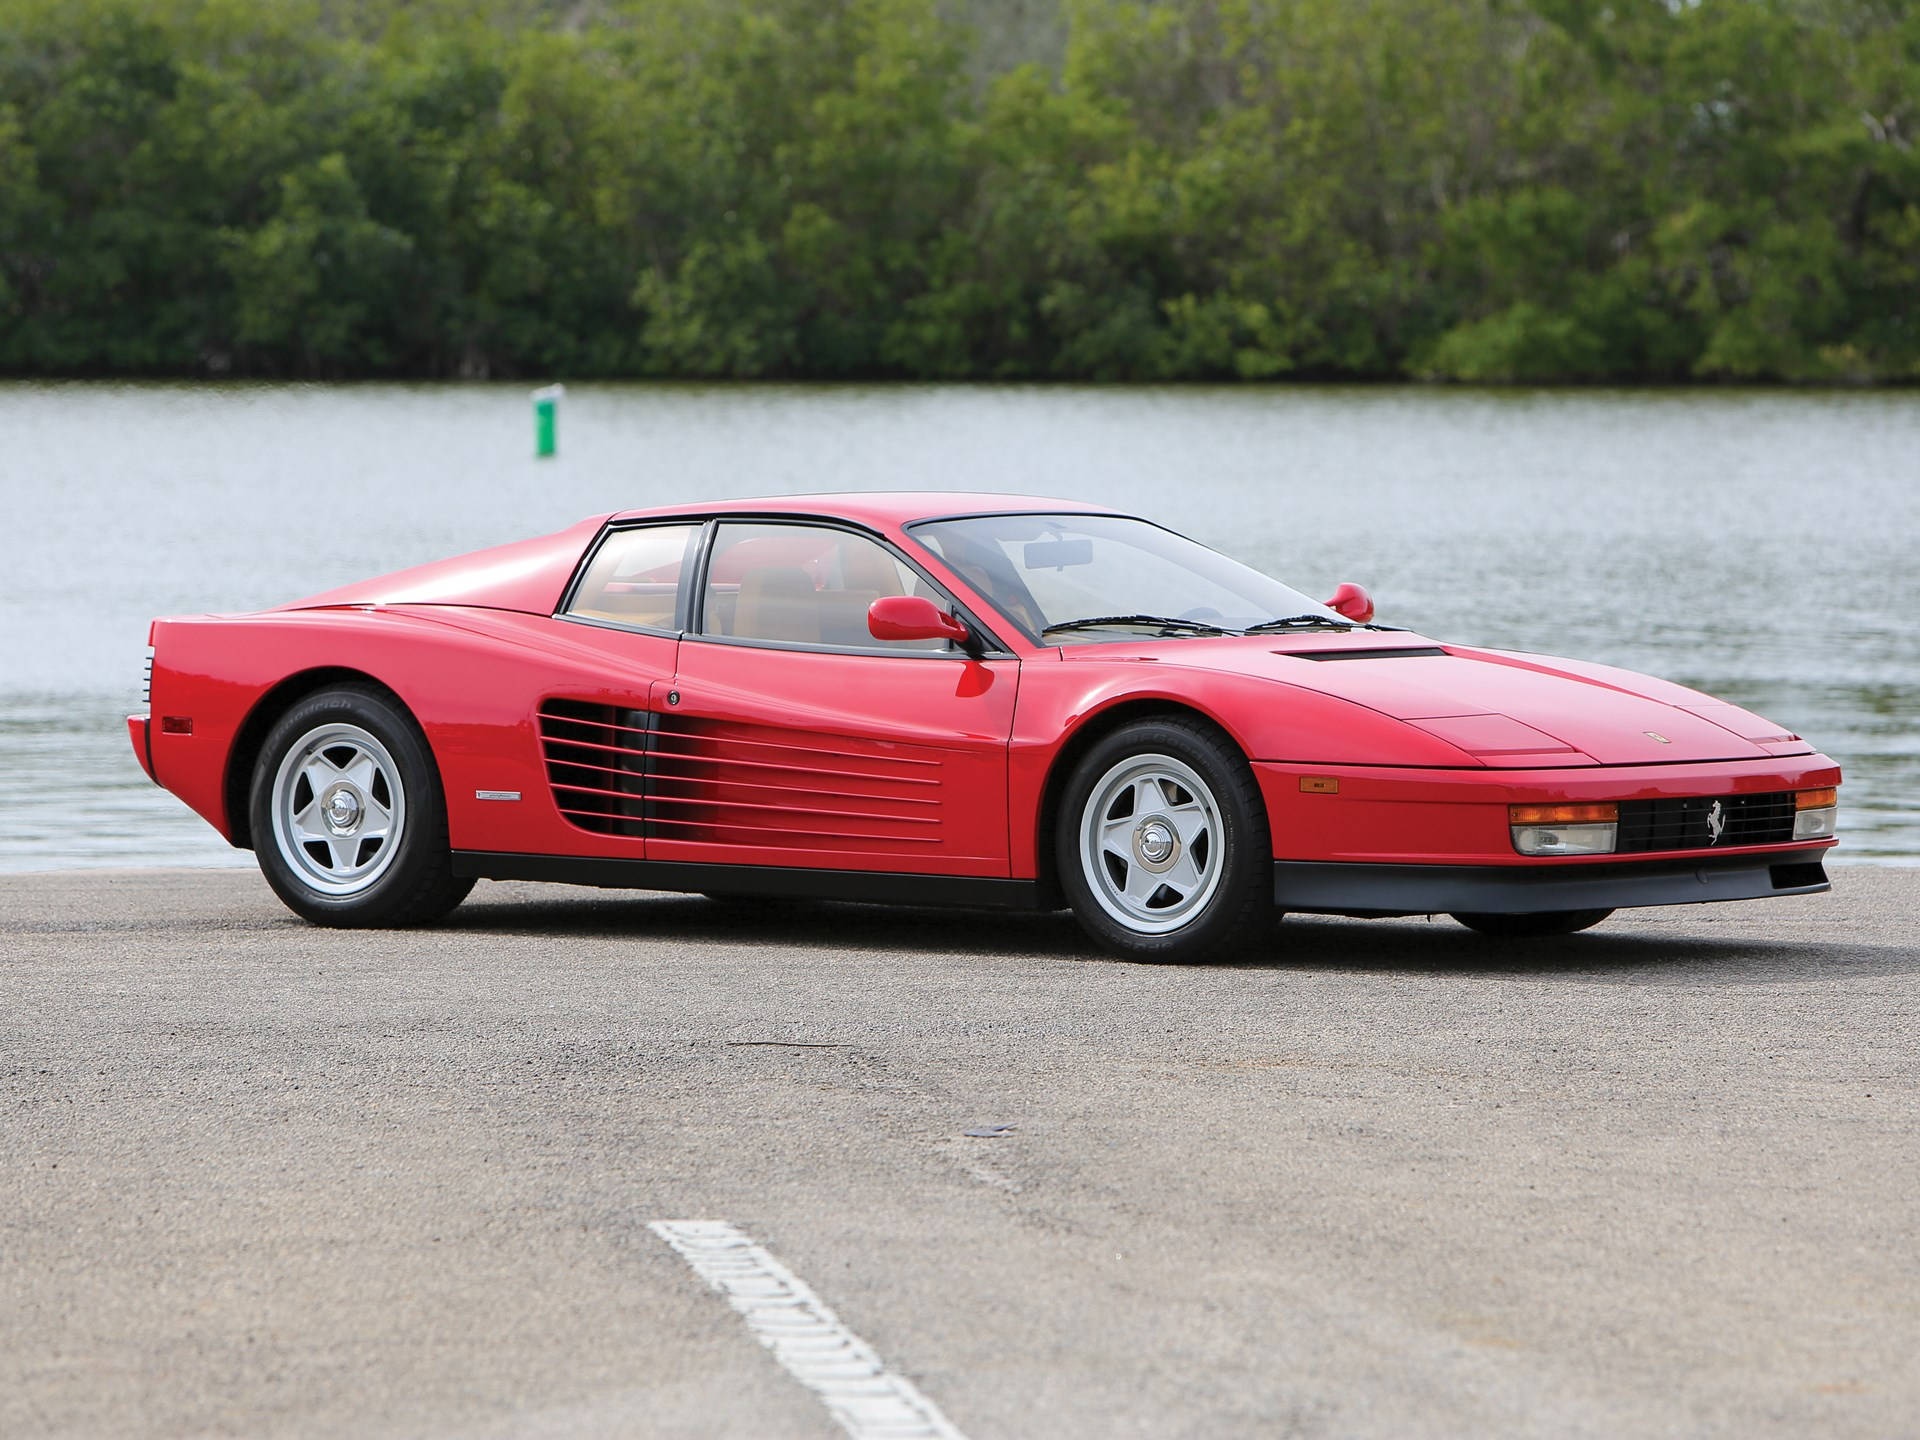 rm sotheby 39 s 1987 ferrari testarossa fort lauderdale 2018. Black Bedroom Furniture Sets. Home Design Ideas